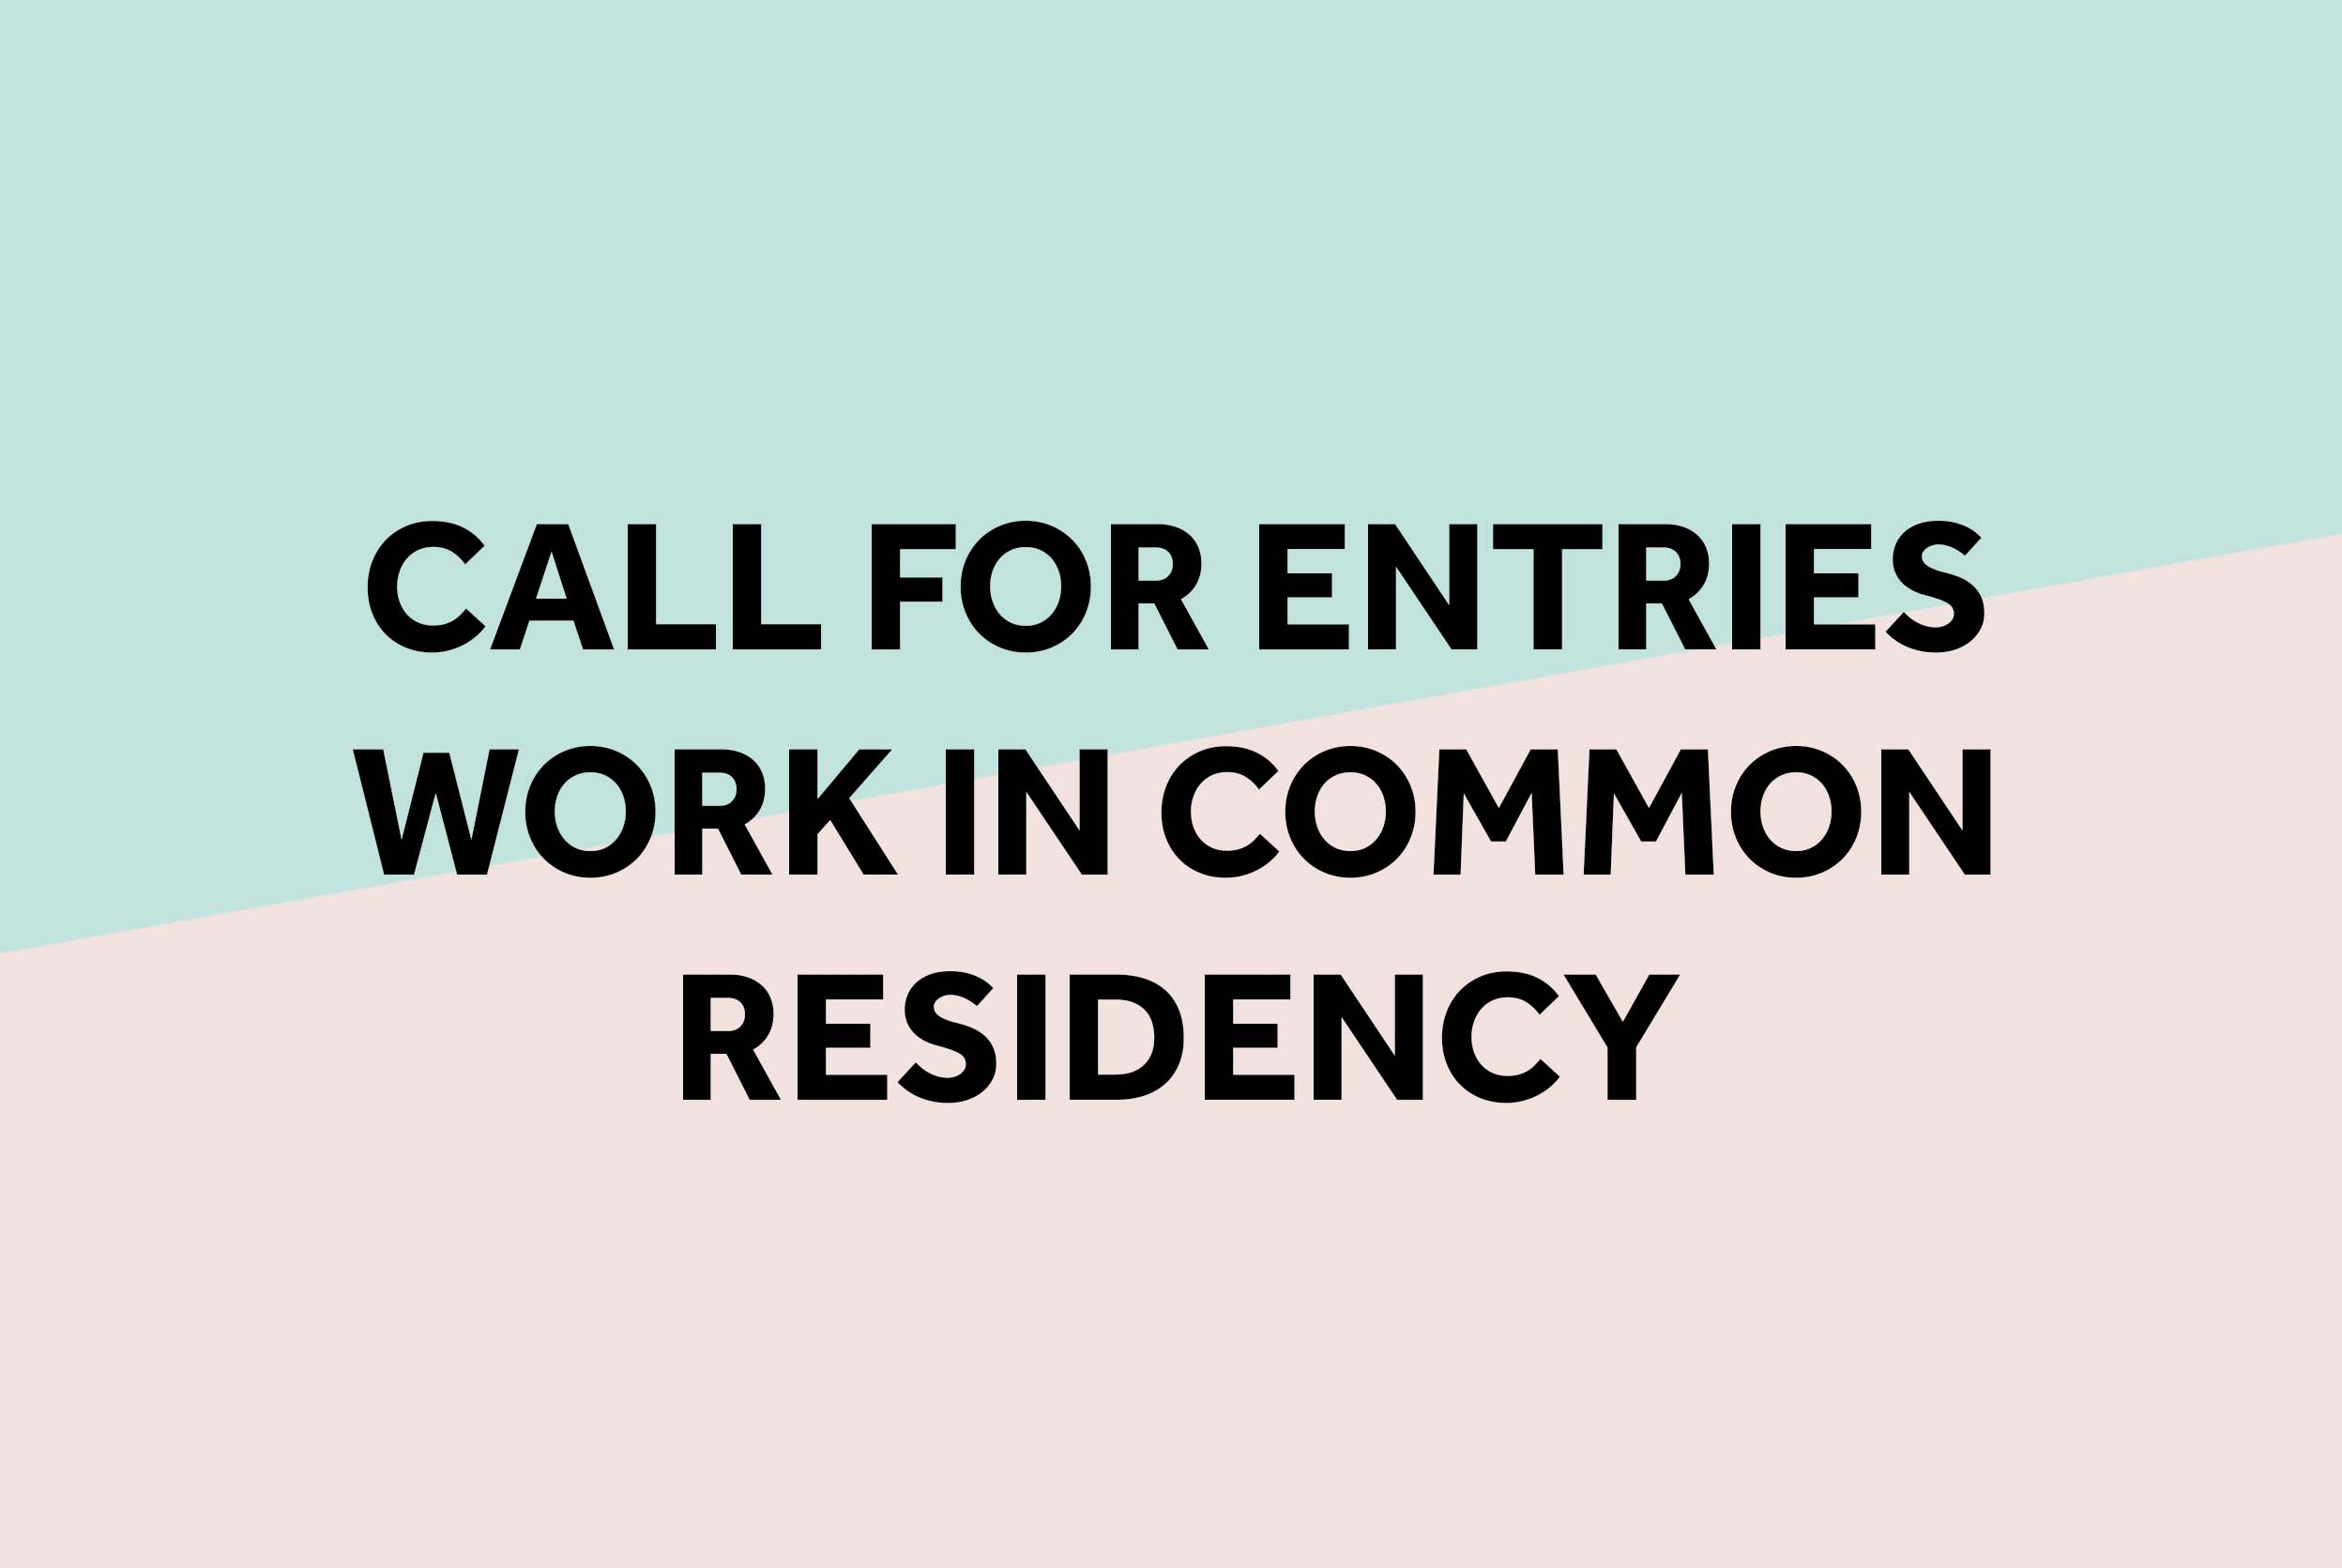 CALL FOR ENTRIED PRIMARY HEADER.jpg